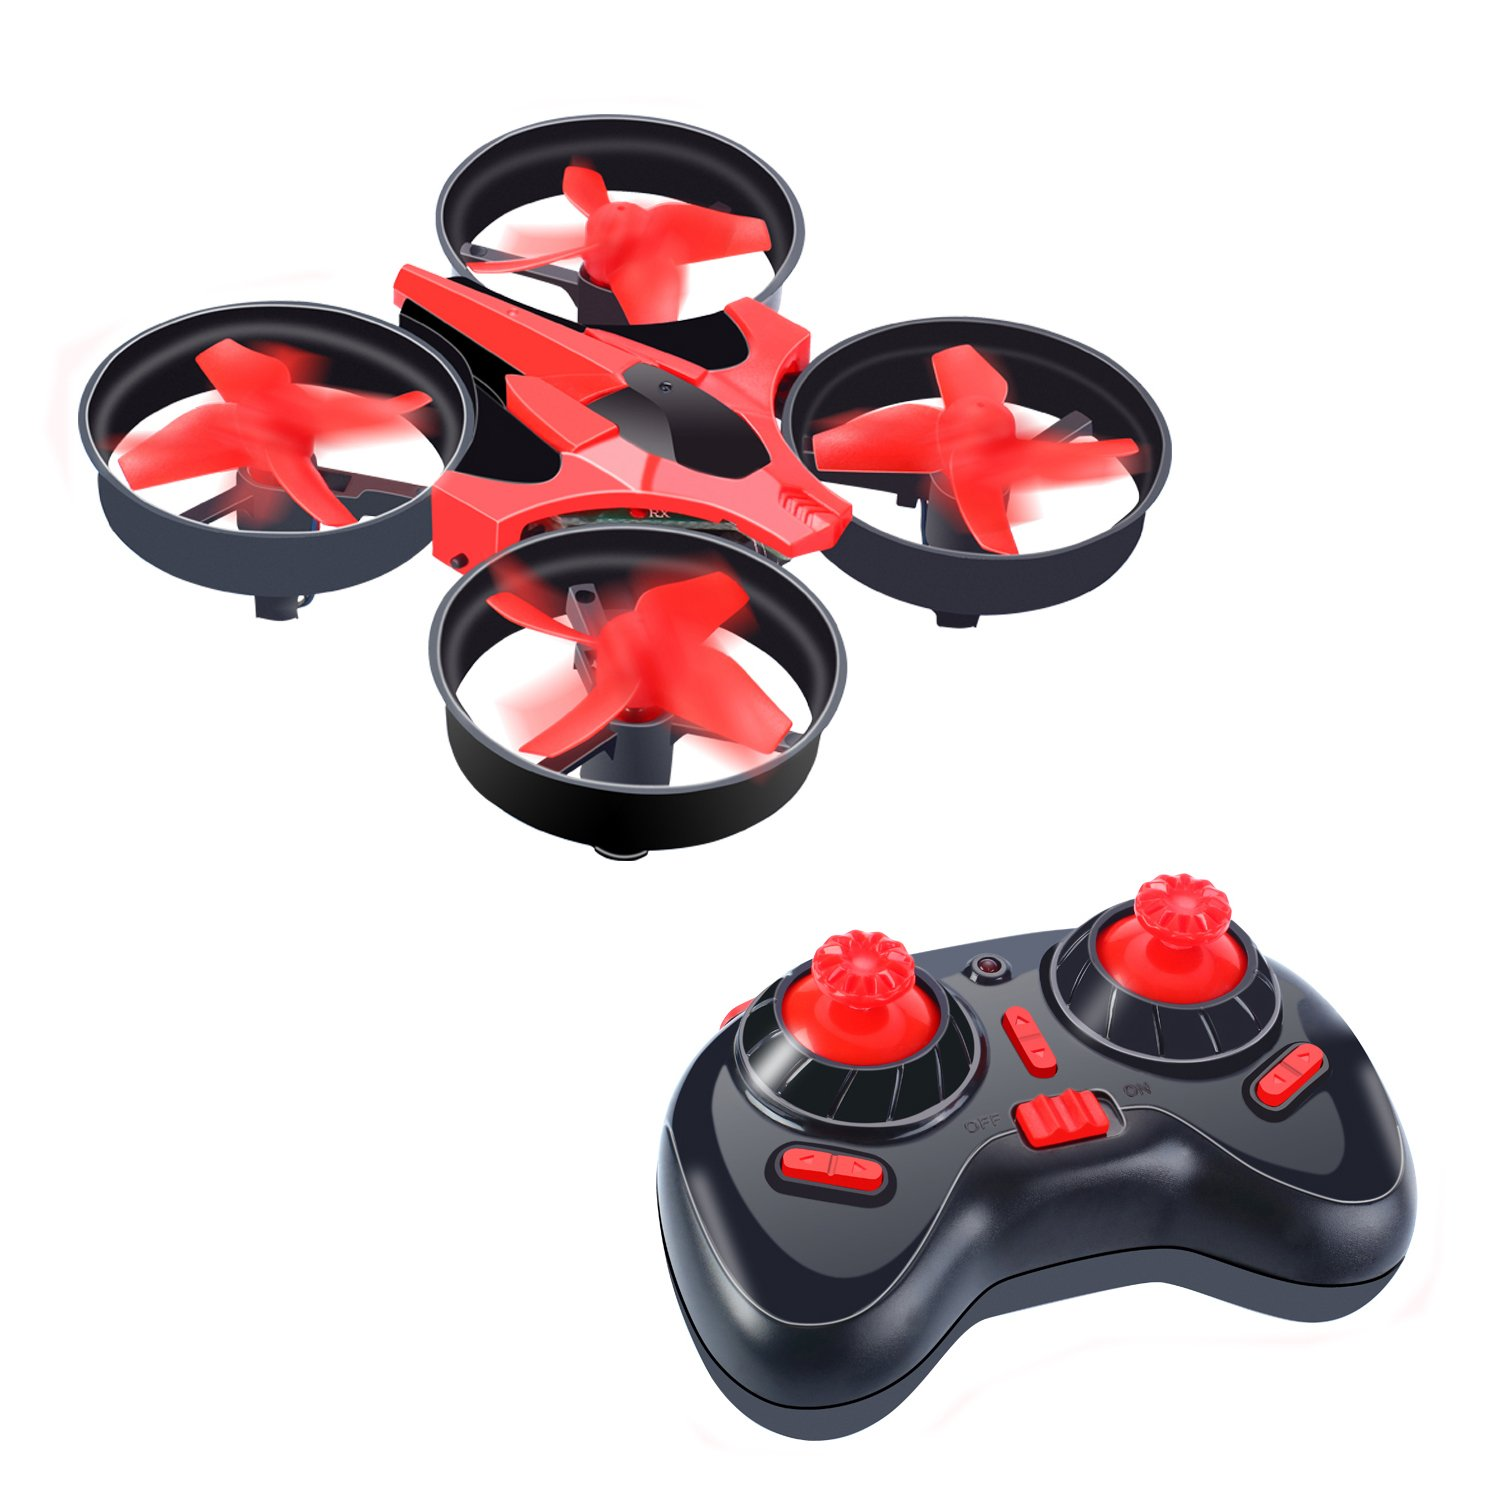 Neecooler Mini RC Drone, UFO Quadcopter Drone RTF Helicopter 2.4G 4CH 6Axis Gyro with LED Lights and Remote Control